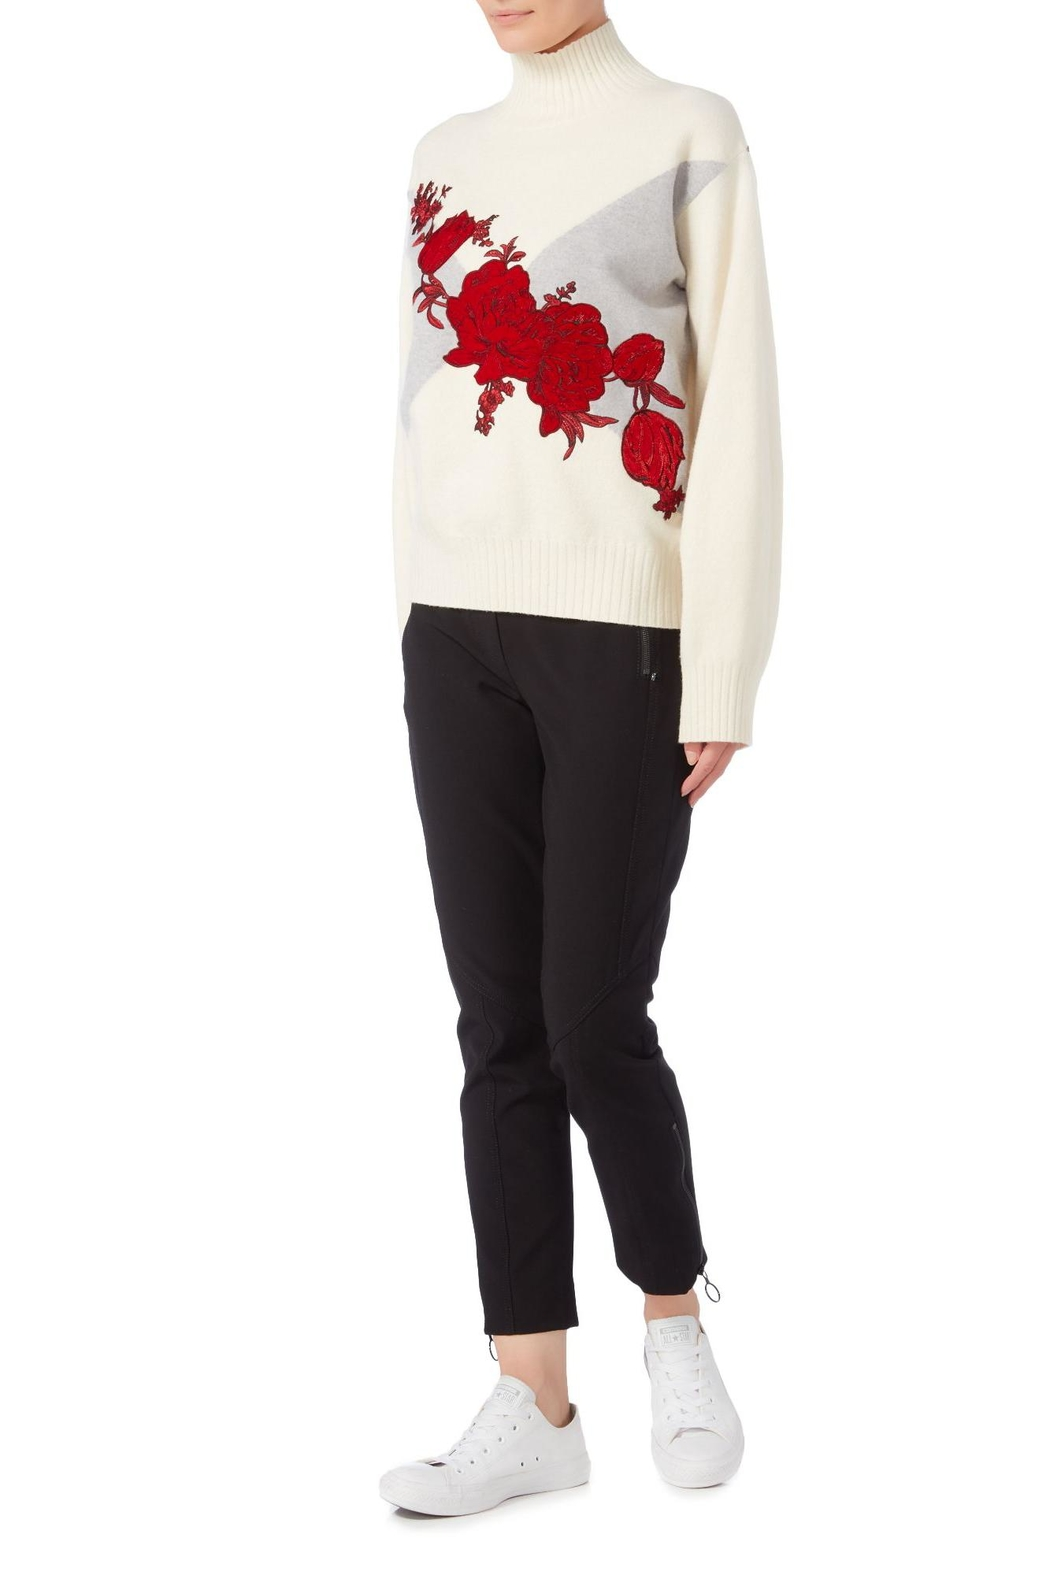 Sportmax Rasoio Floral Sweater - Front Full Image